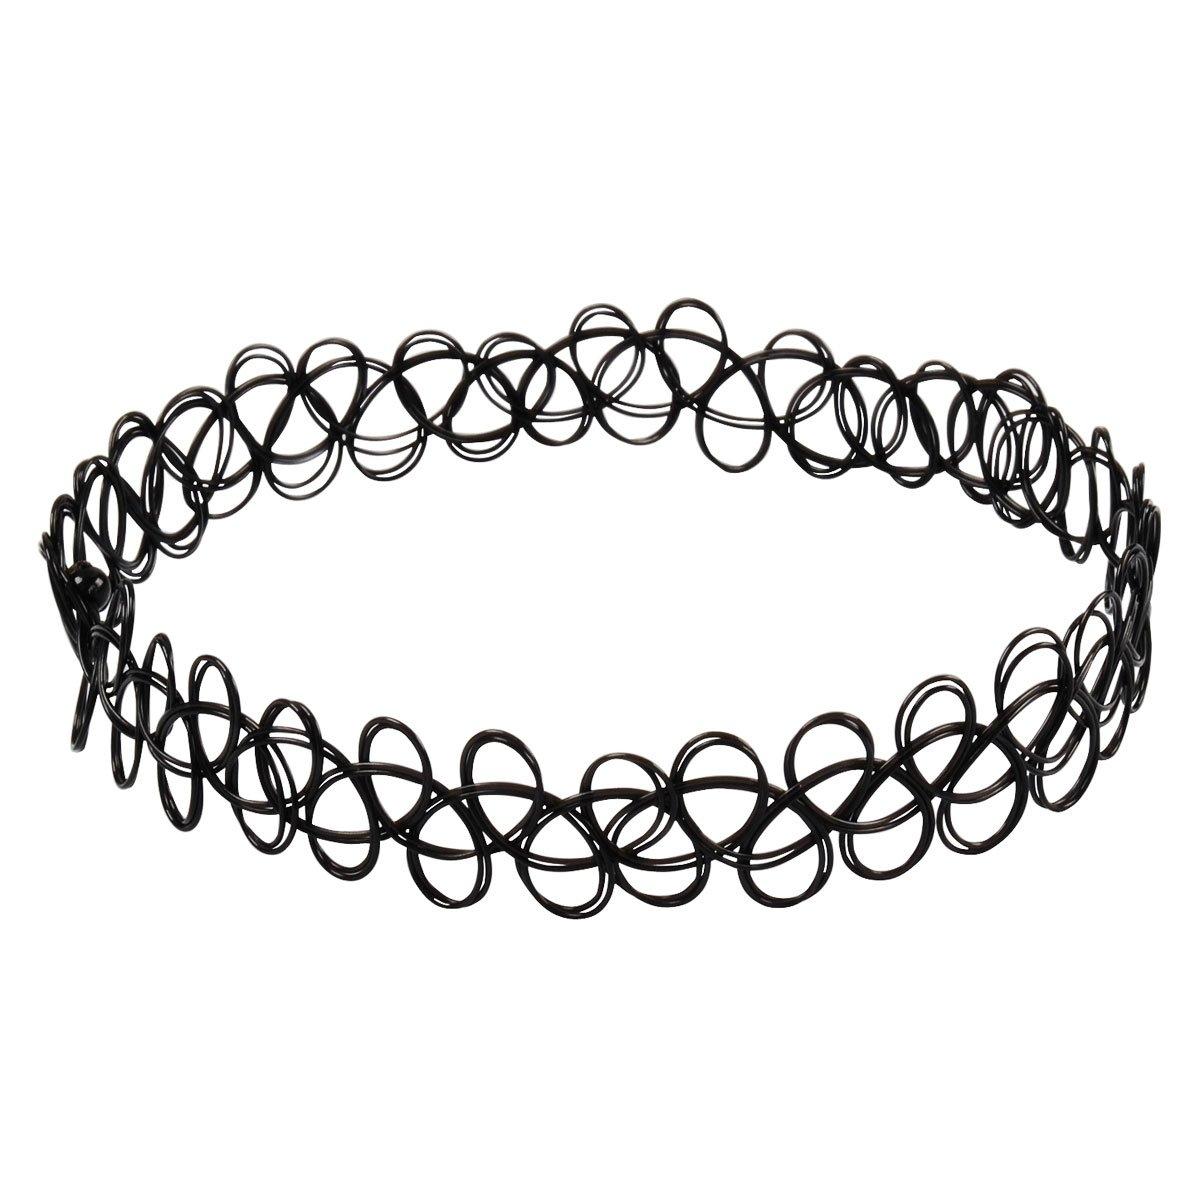 amazon jane stone choker black stretch gothic tattoo henna Sleeve by Lena Jewelry amazon jane stone choker black stretch gothic tattoo henna necklace fn1450 black jewelry